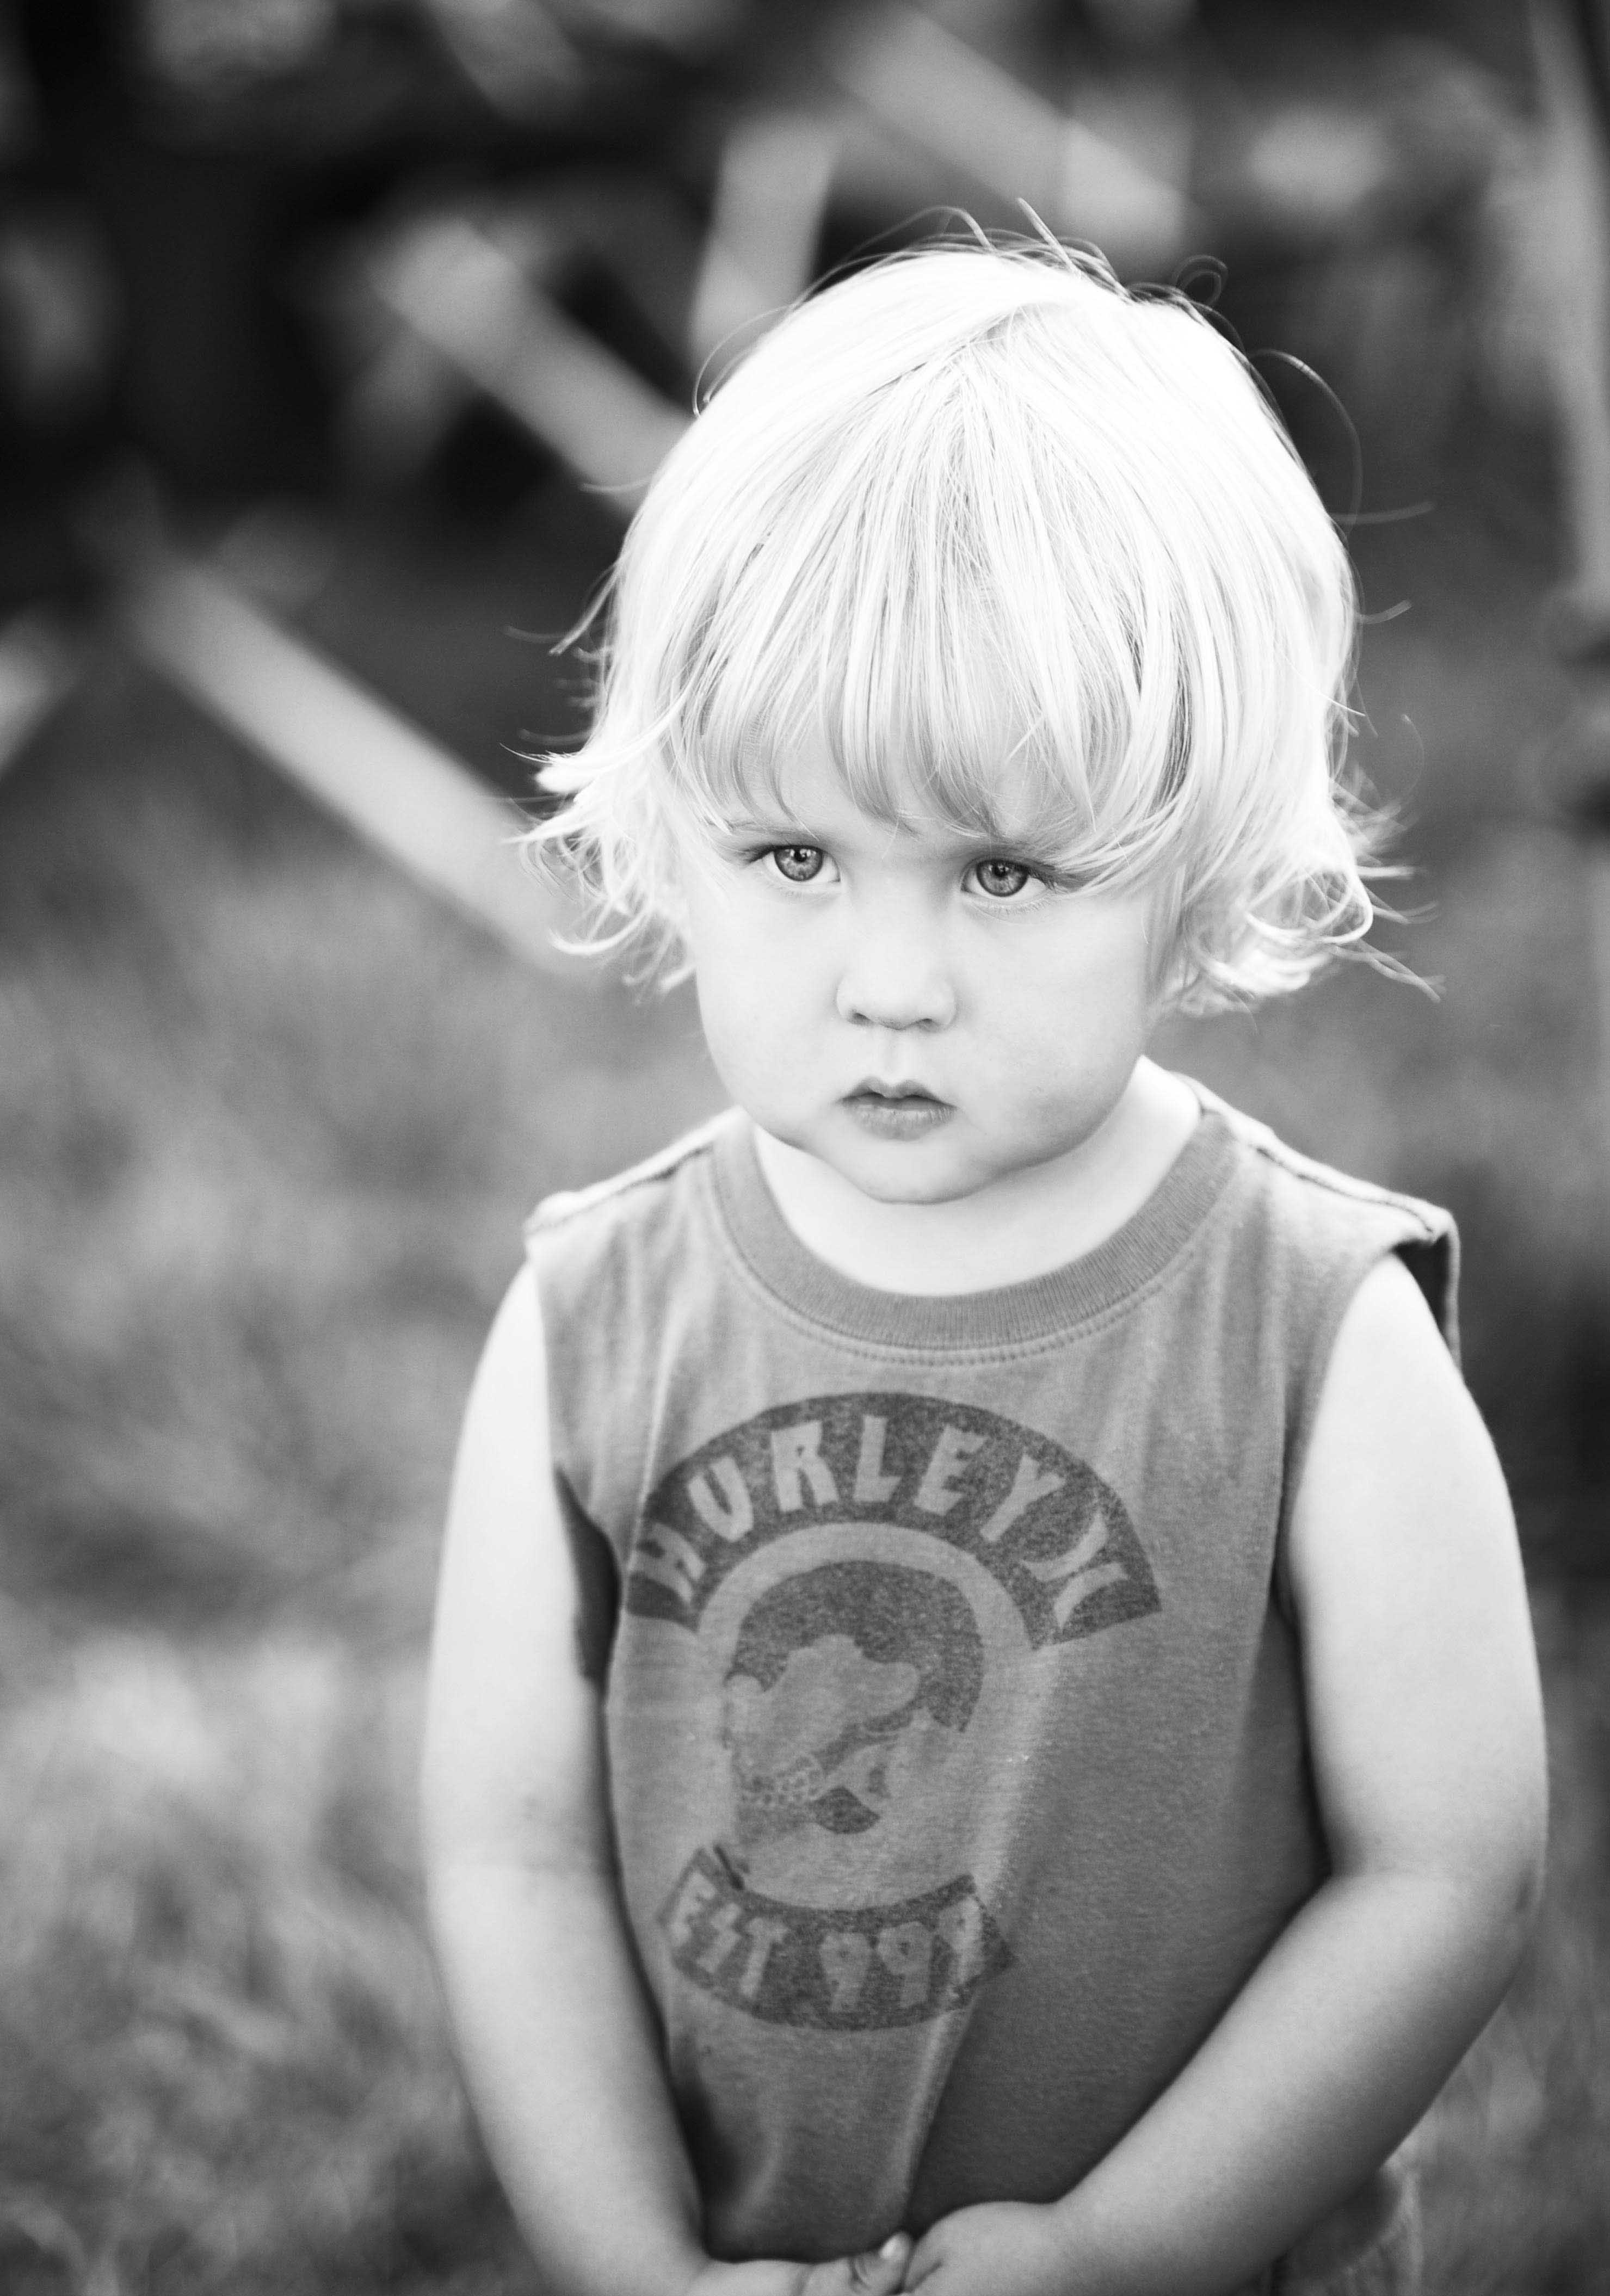 Fine Art Childrens photography, Black and white children's Portraits, Eclectic Photography, Brighton, Sussex